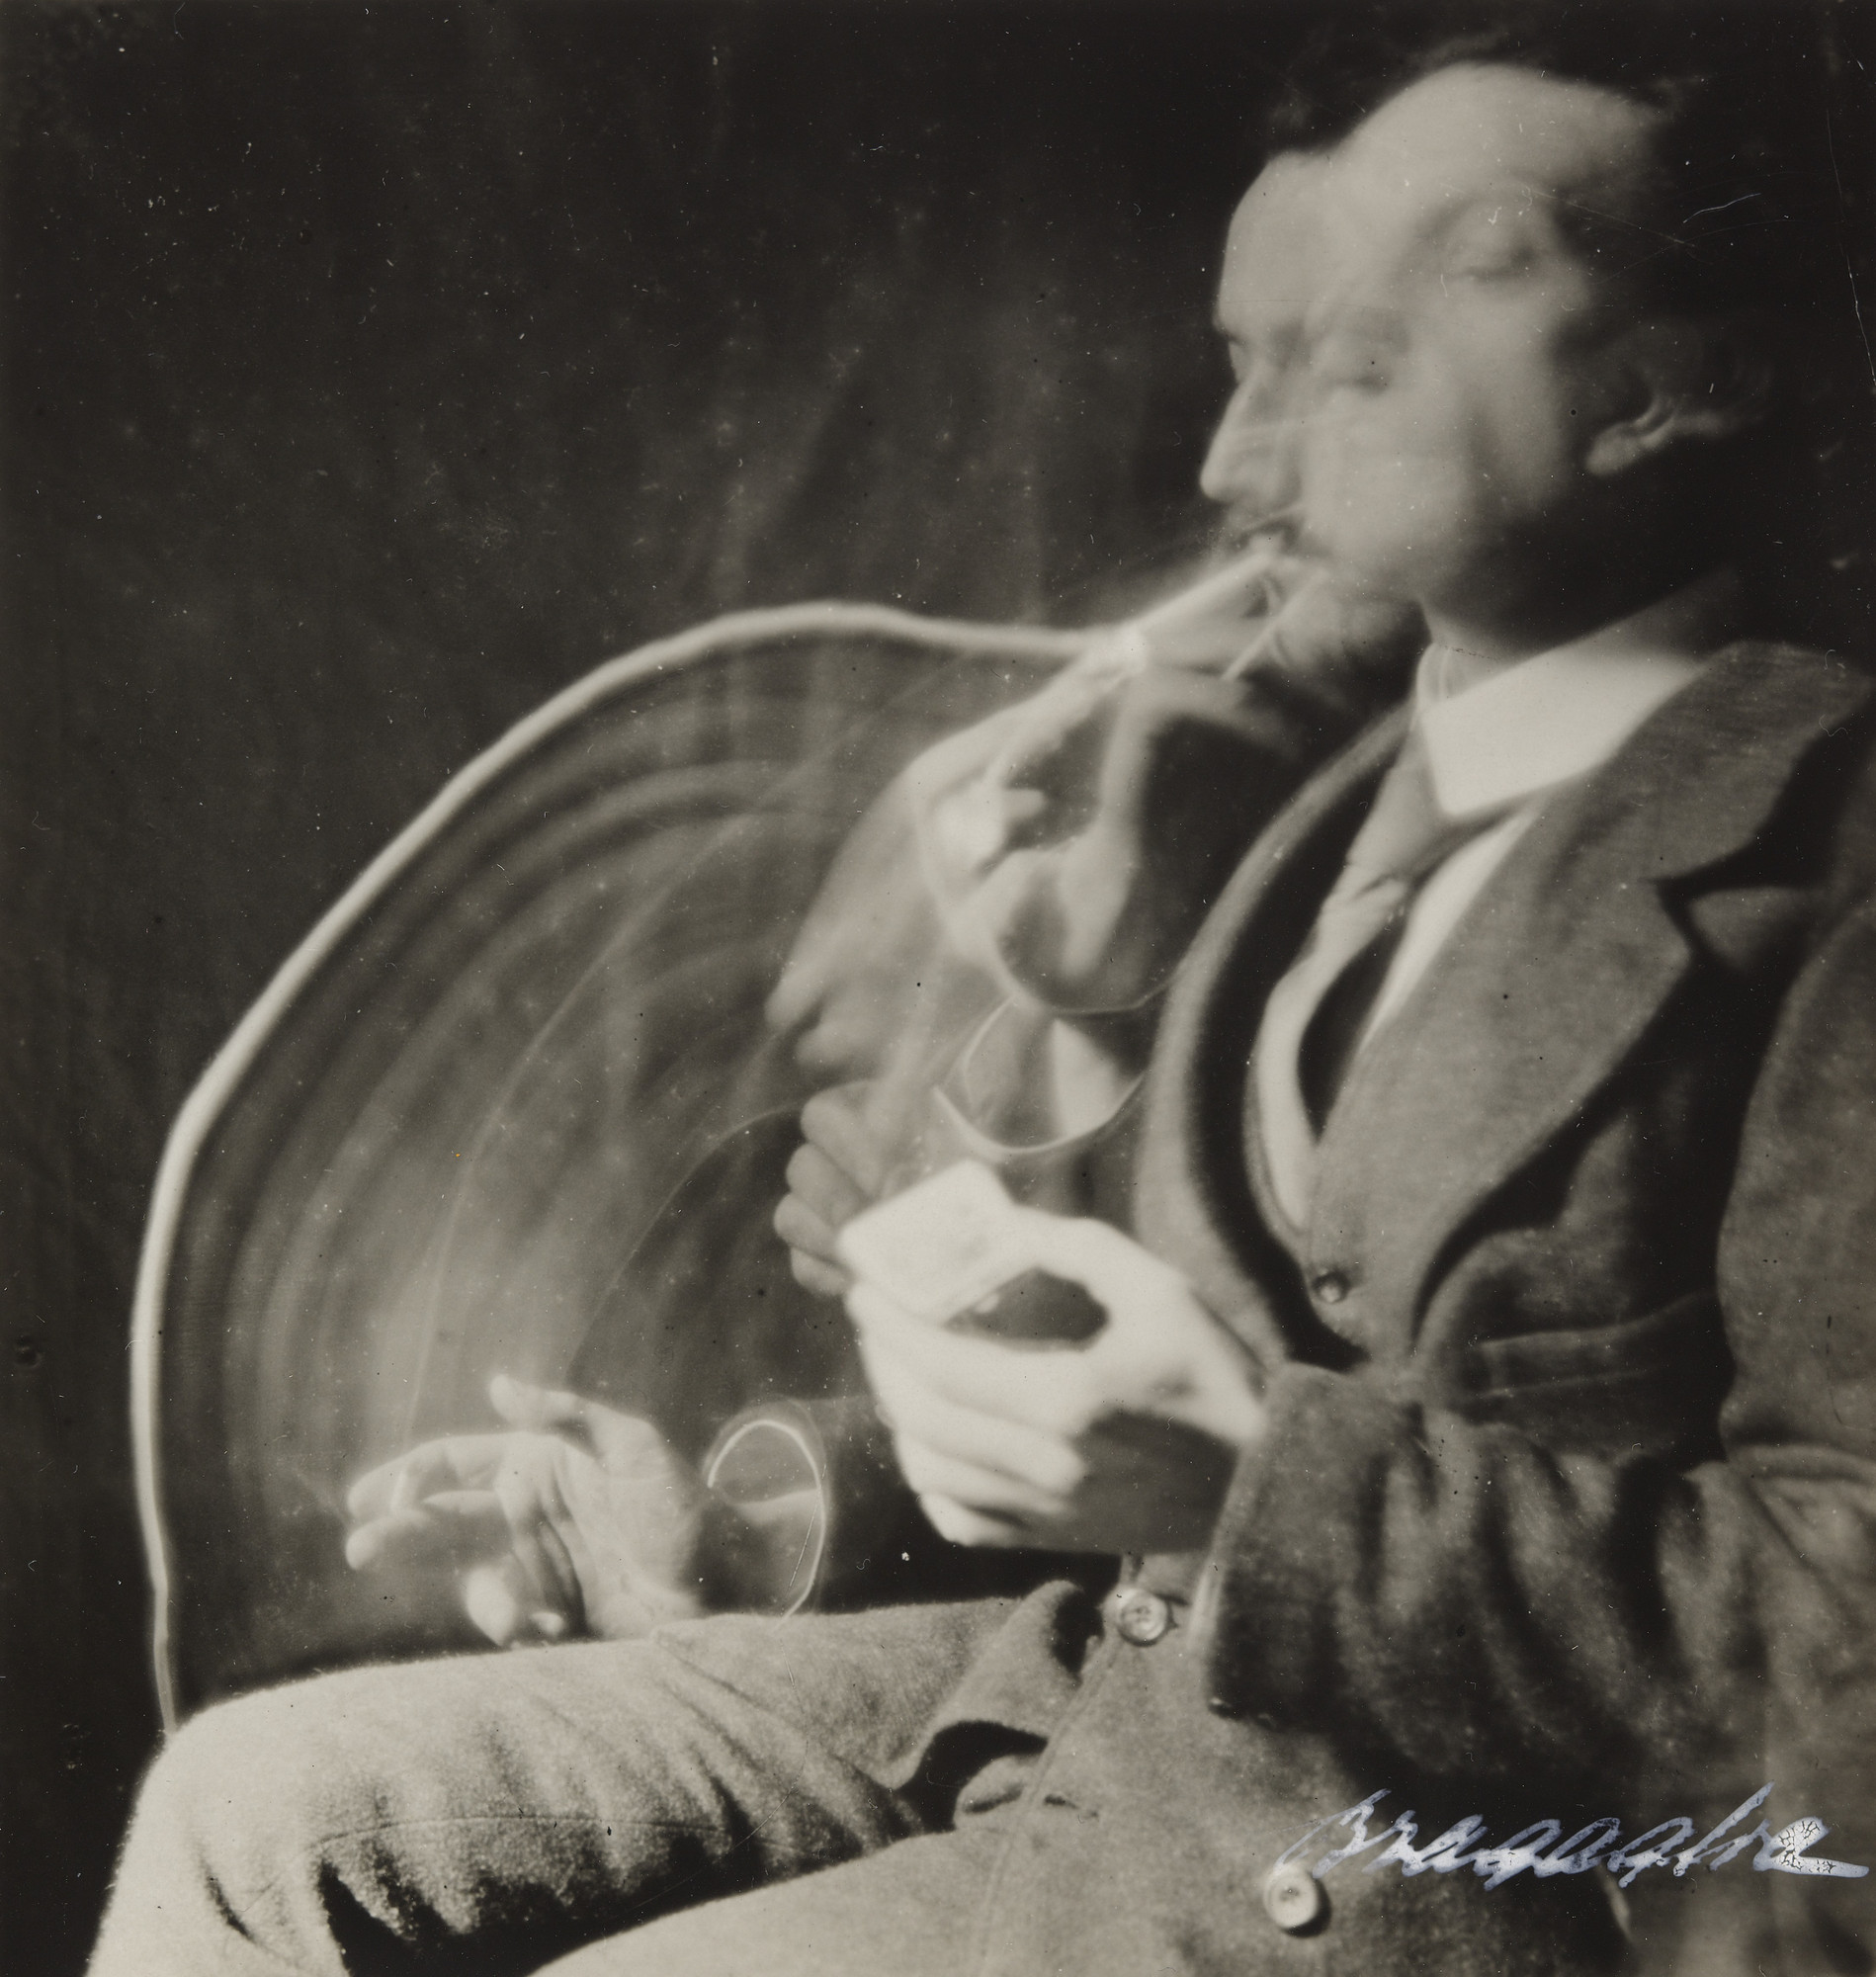 Anton Giulio Bragaglia, Arturo Bragaglia. The Smoker–The Match–The Cigarette. 1911